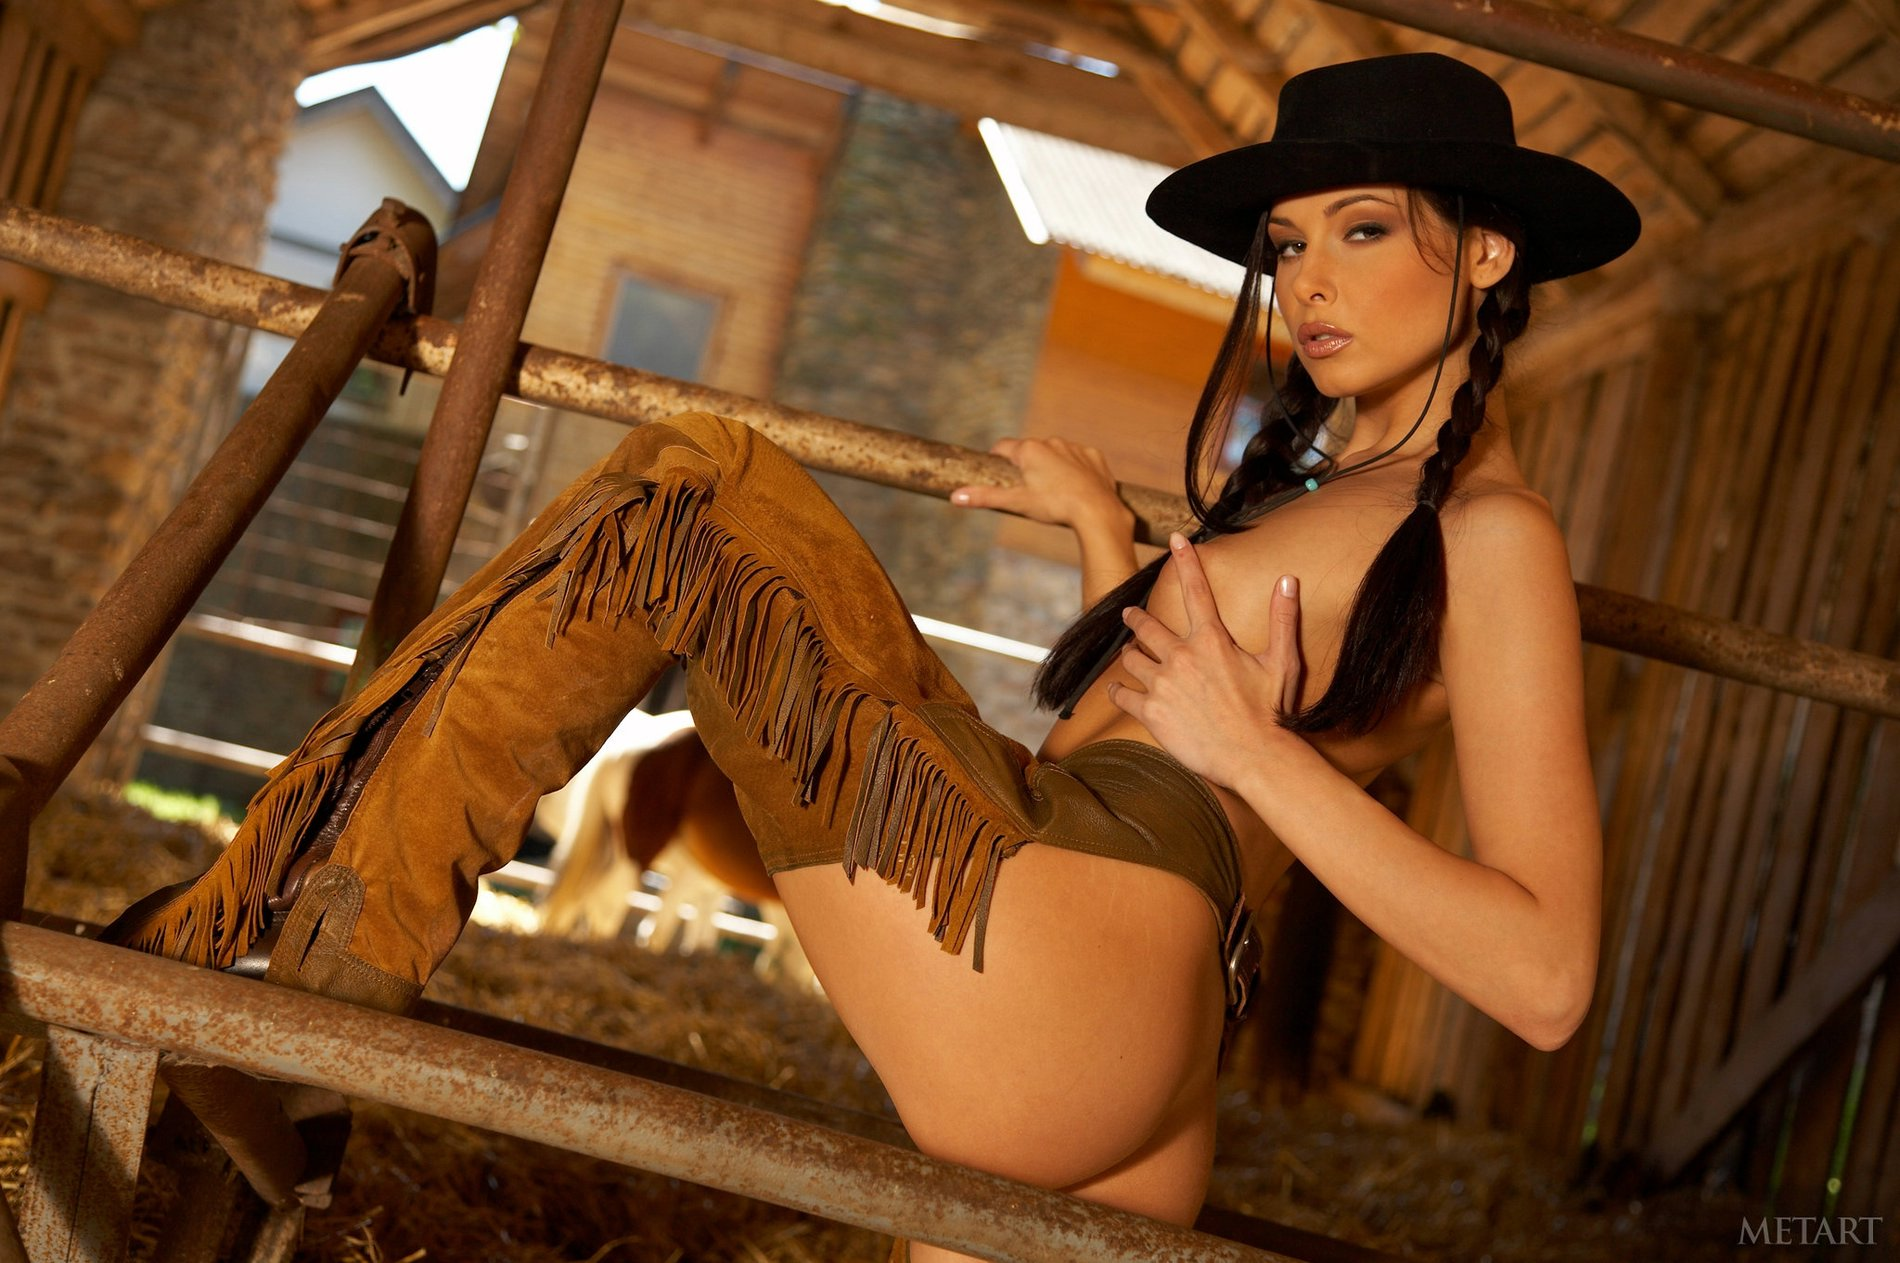 X Art Videos and Pictures amp XArt Porn and Their Erotic